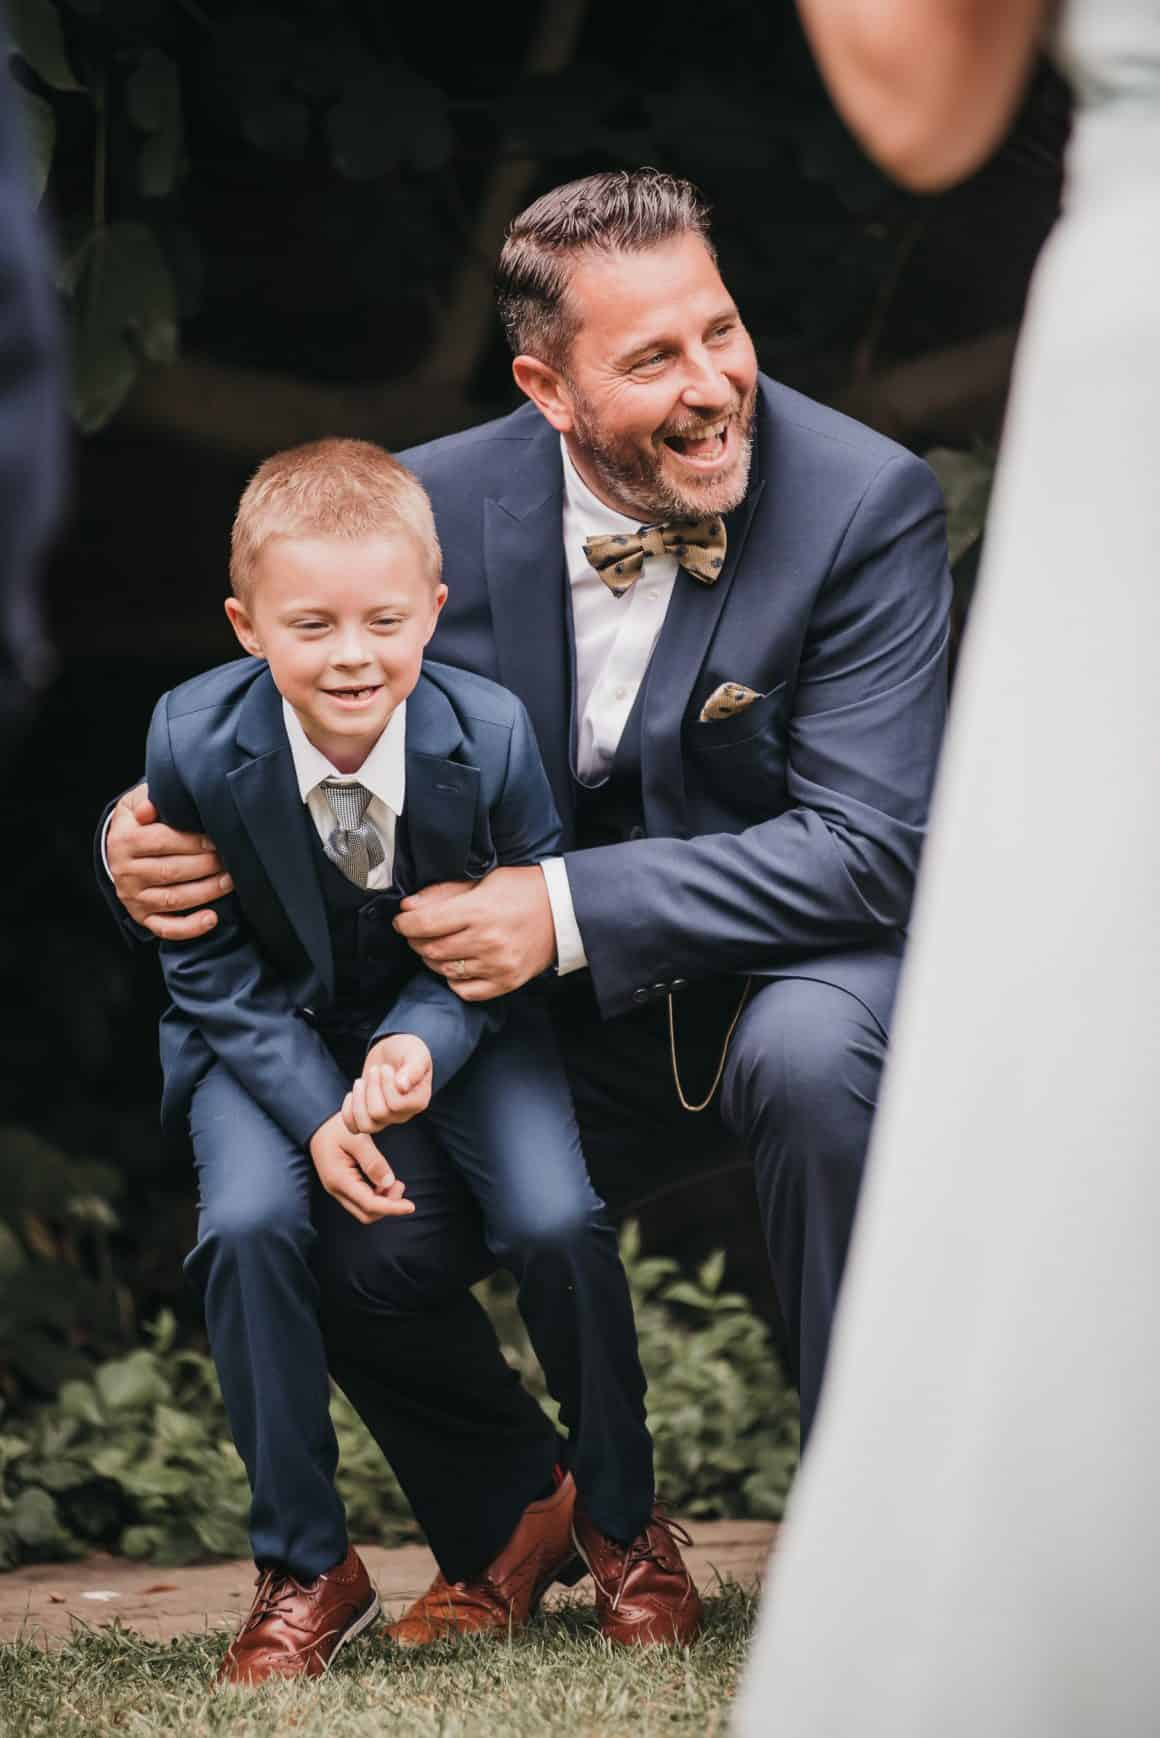 this image shows a little boy having fun with his dad at a wedding